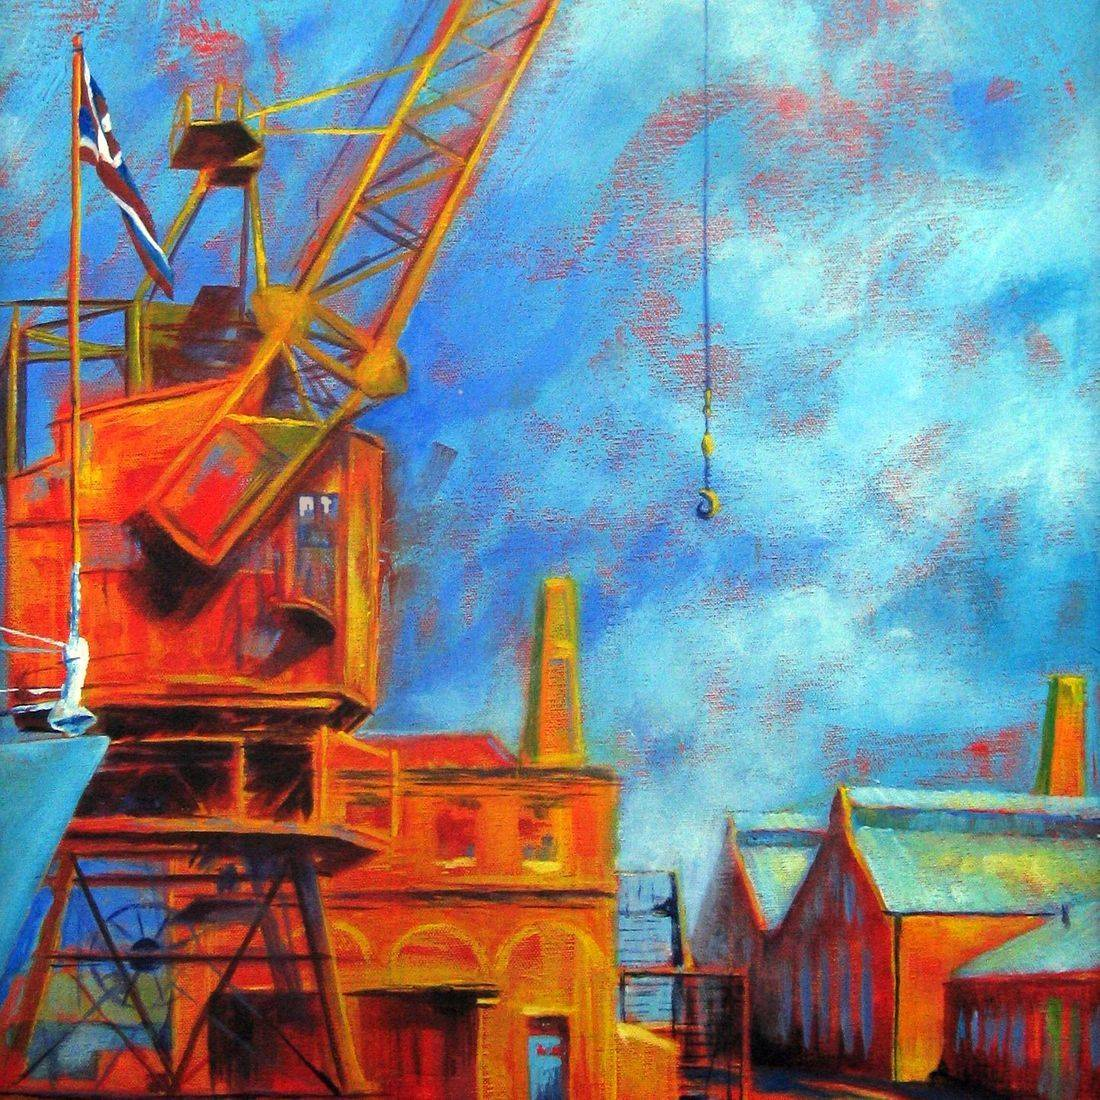 Acrylic painting dockyard Chatham by Sandra Louisa